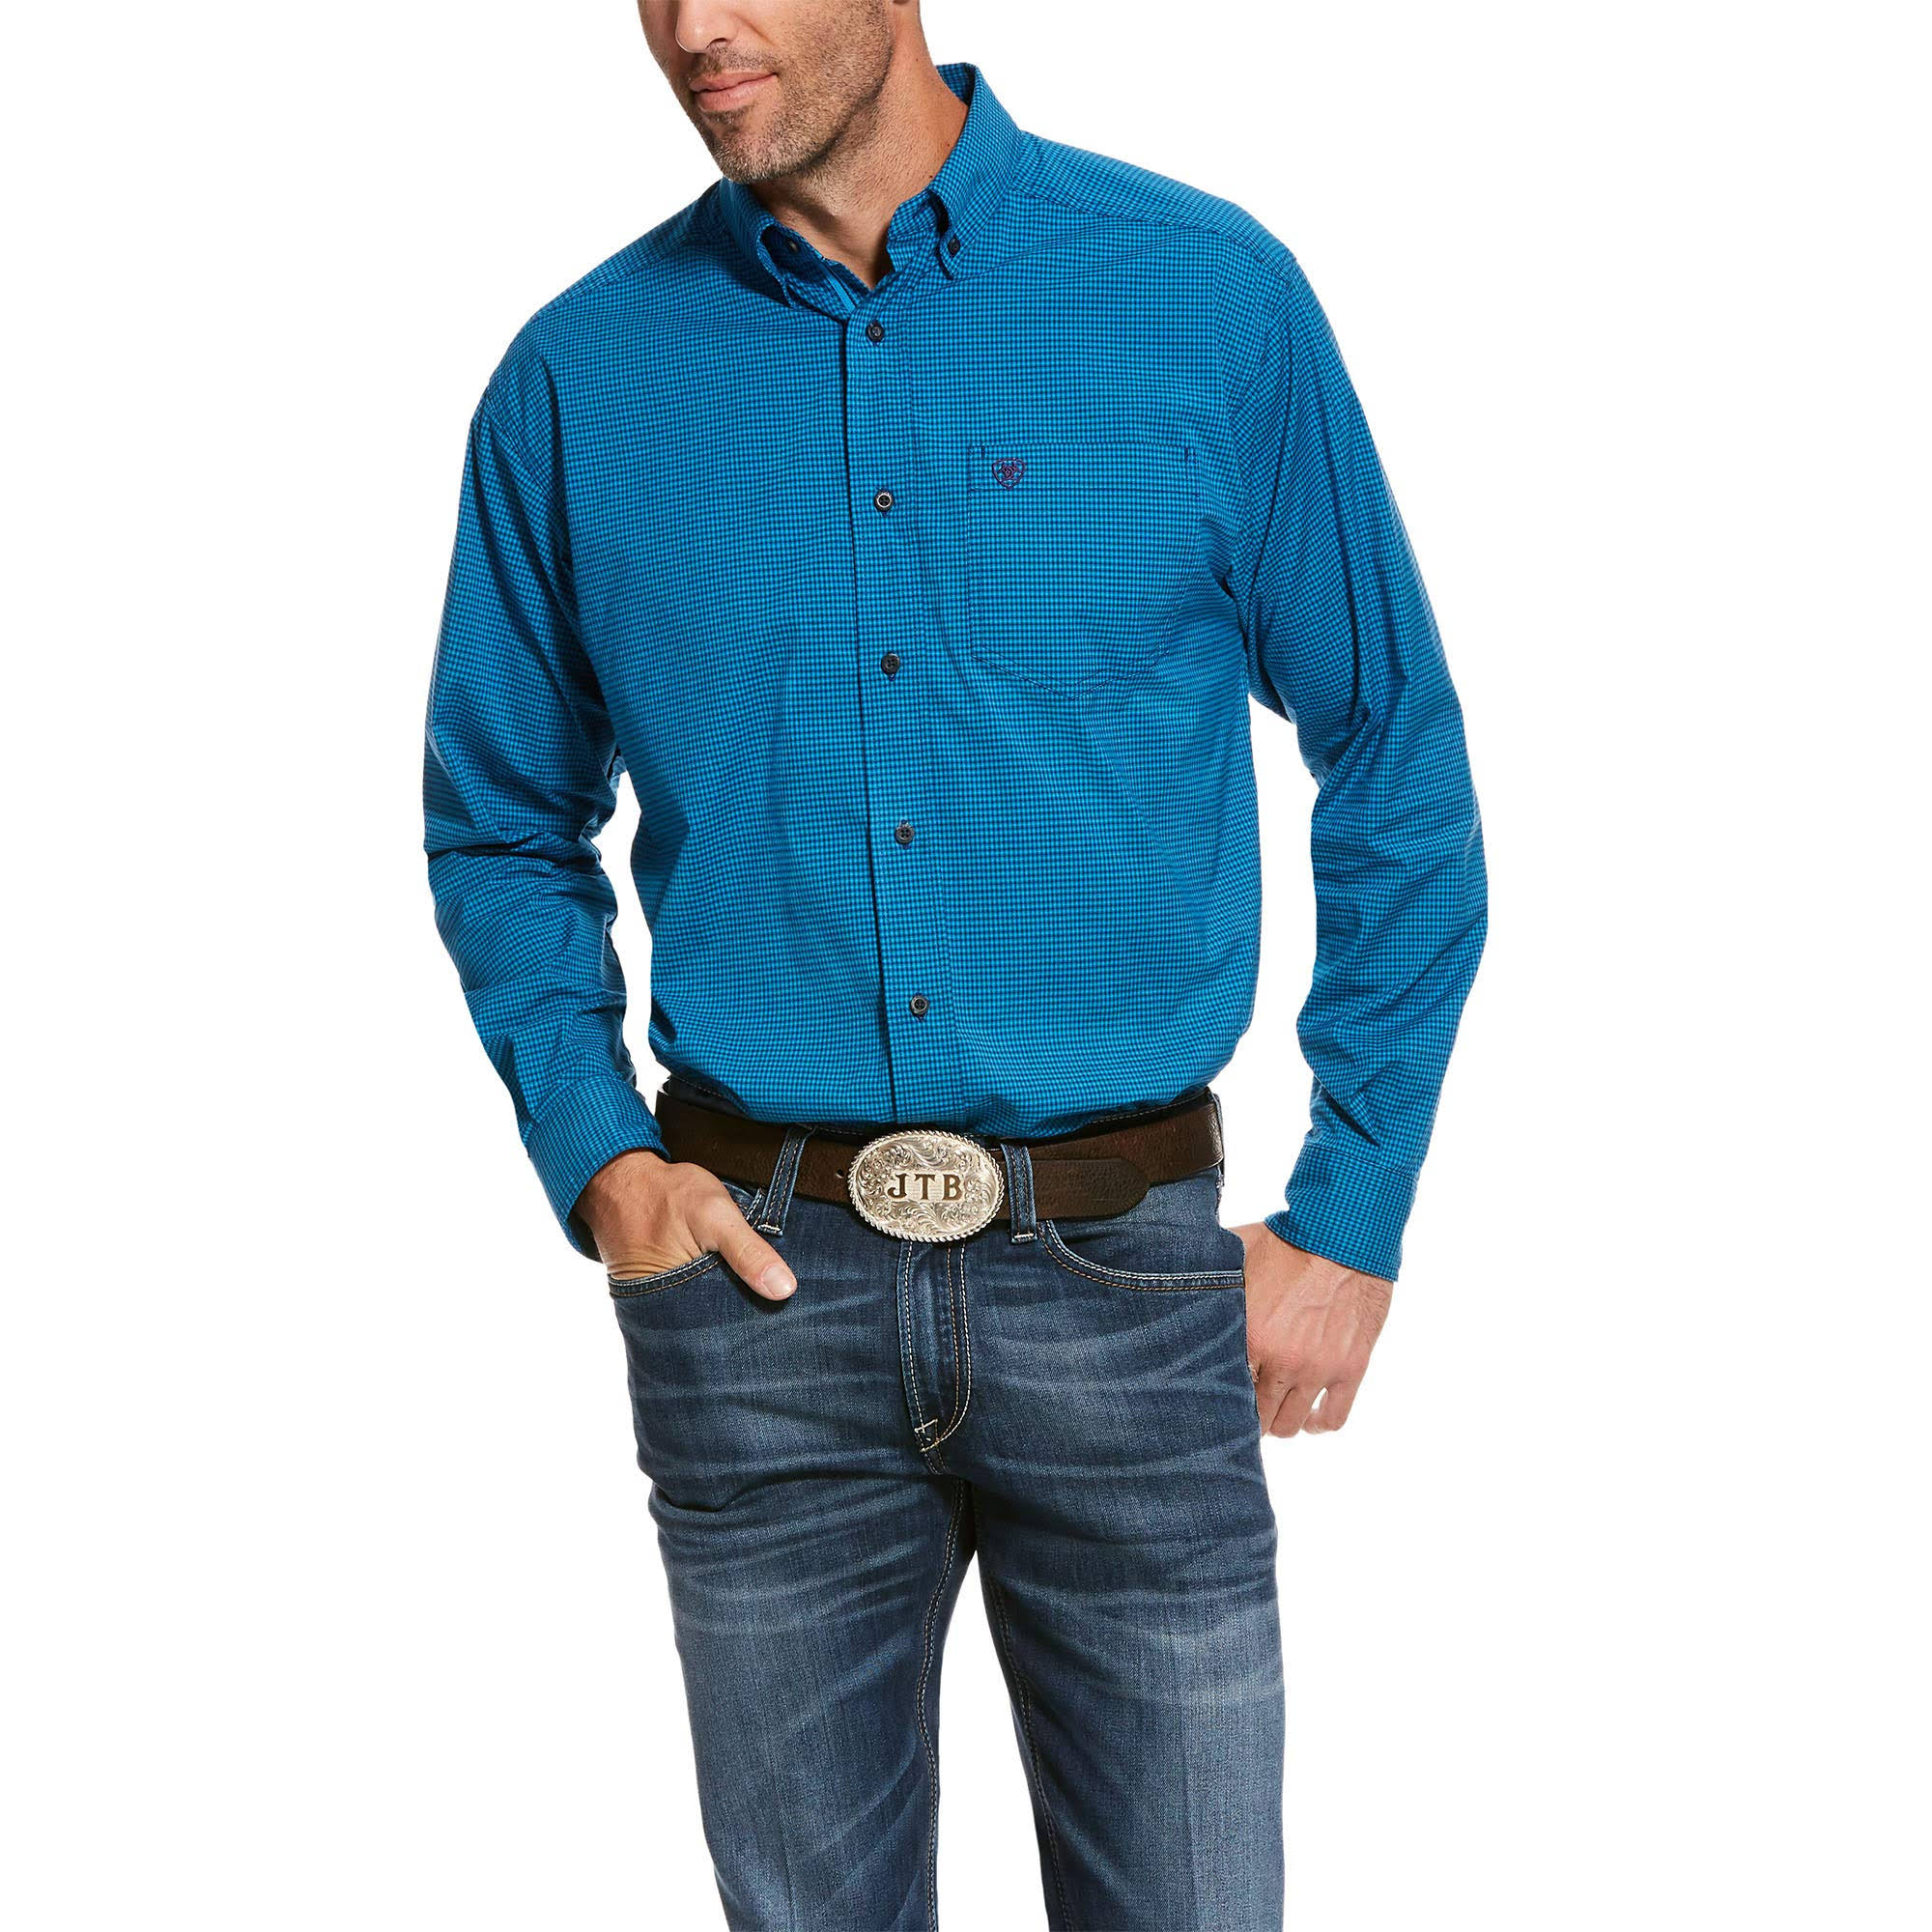 Ariat Men's Pro Series Stetson Stretch Classic Fit Shirt